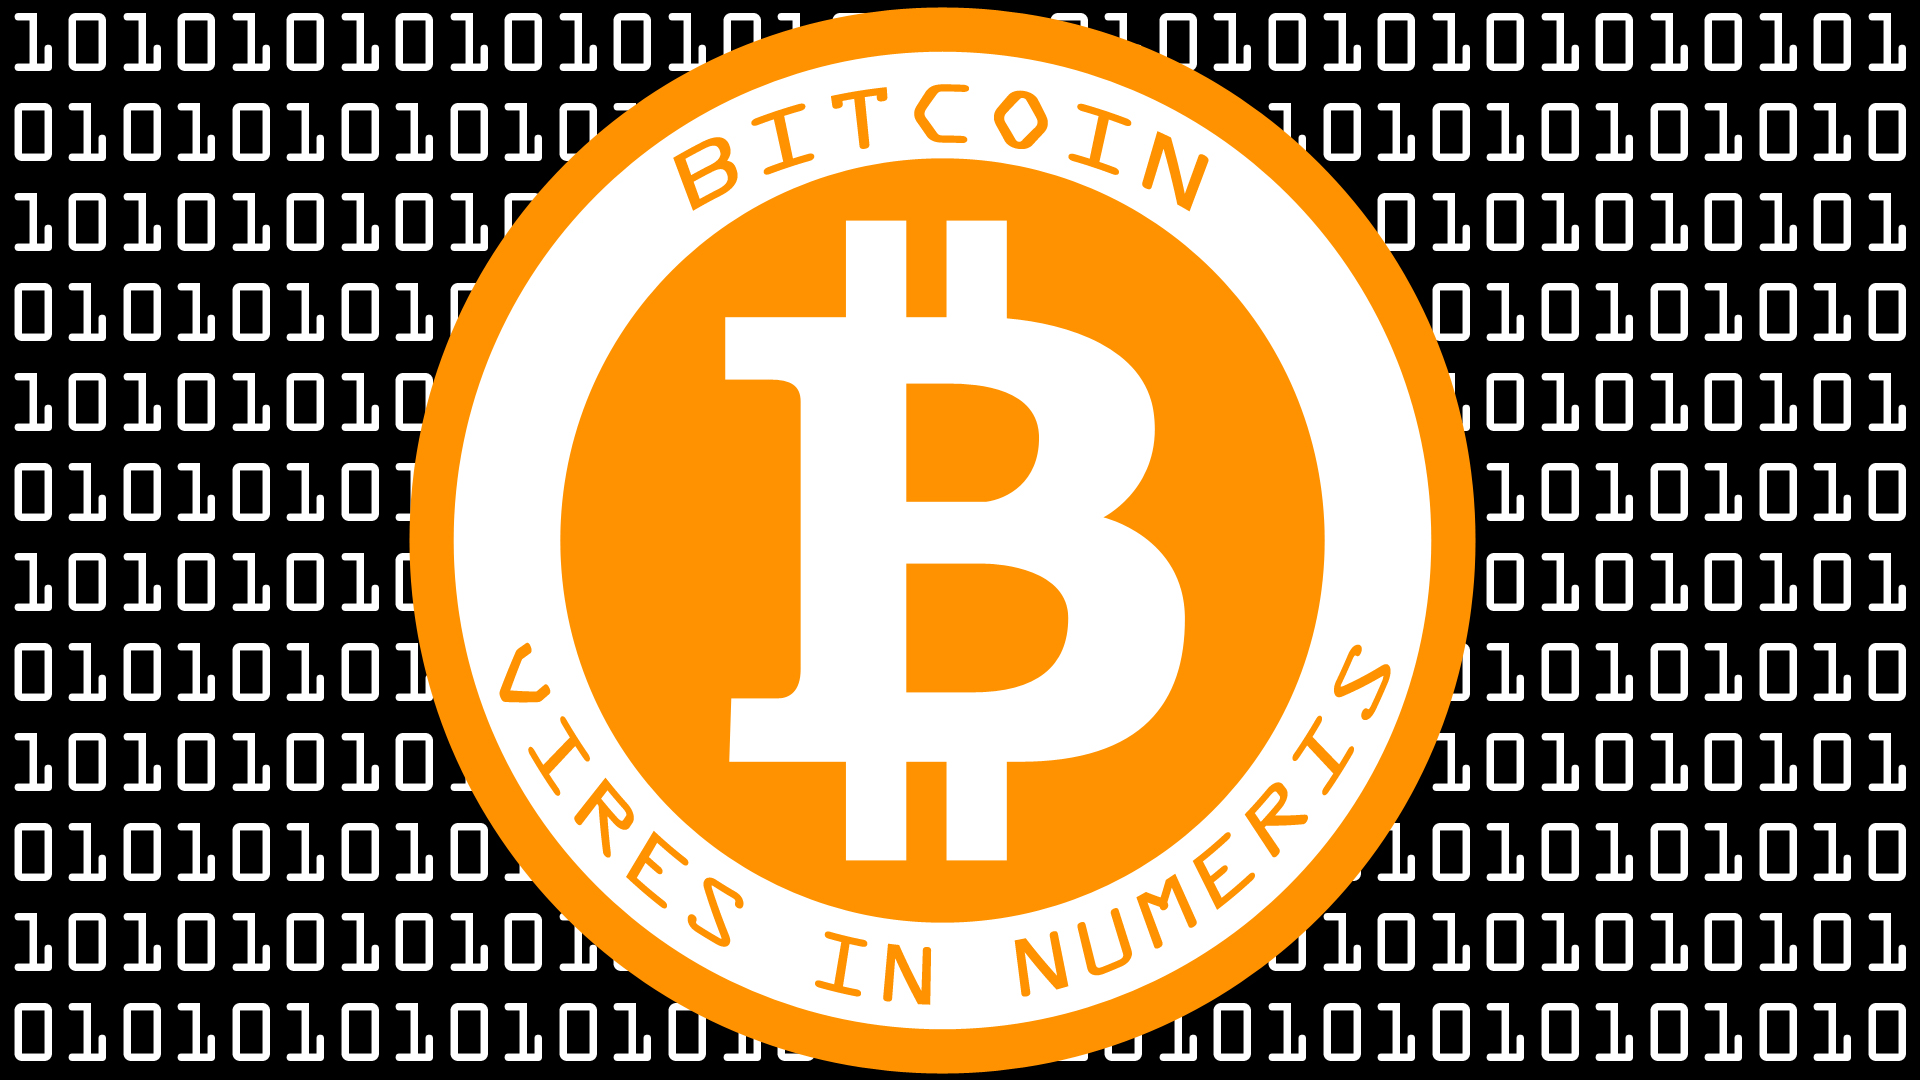 Financial forecasting firm accepting Bitcoins